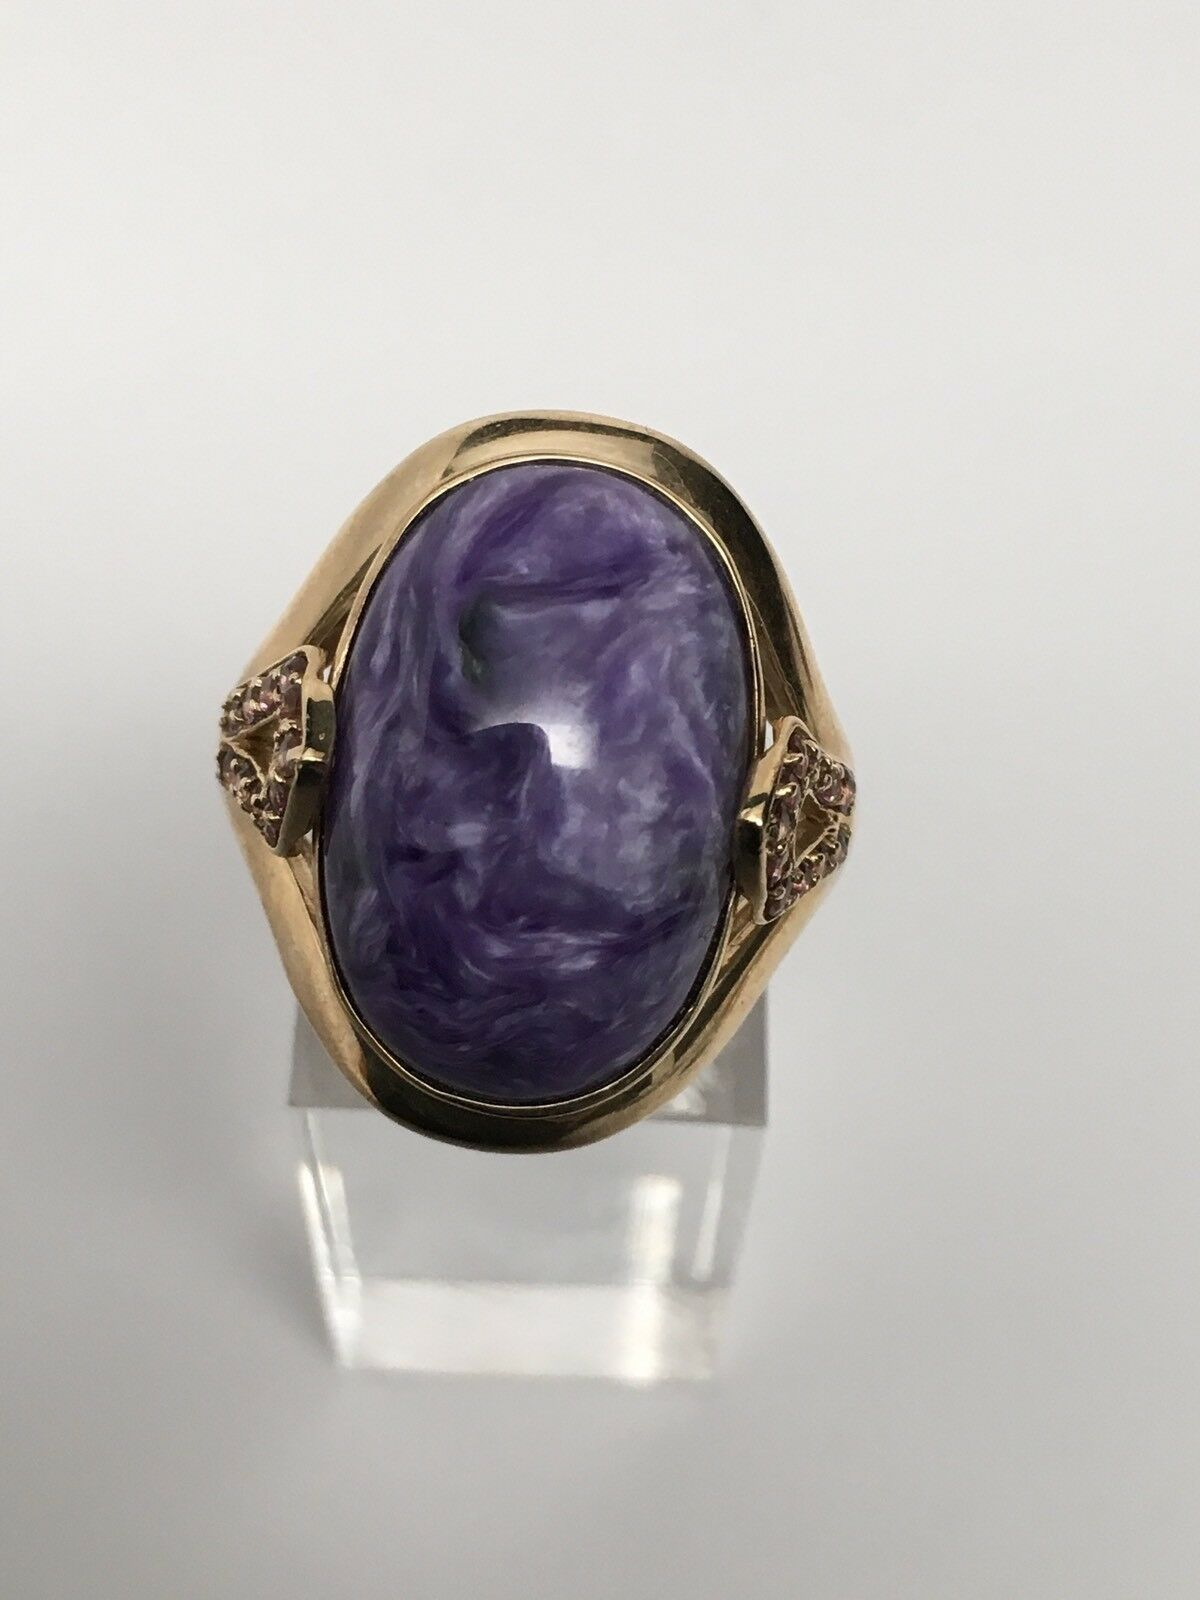 10K Yellow gold Large Oval Shape Bezel Set Purple Charoite Ring Size 9.25